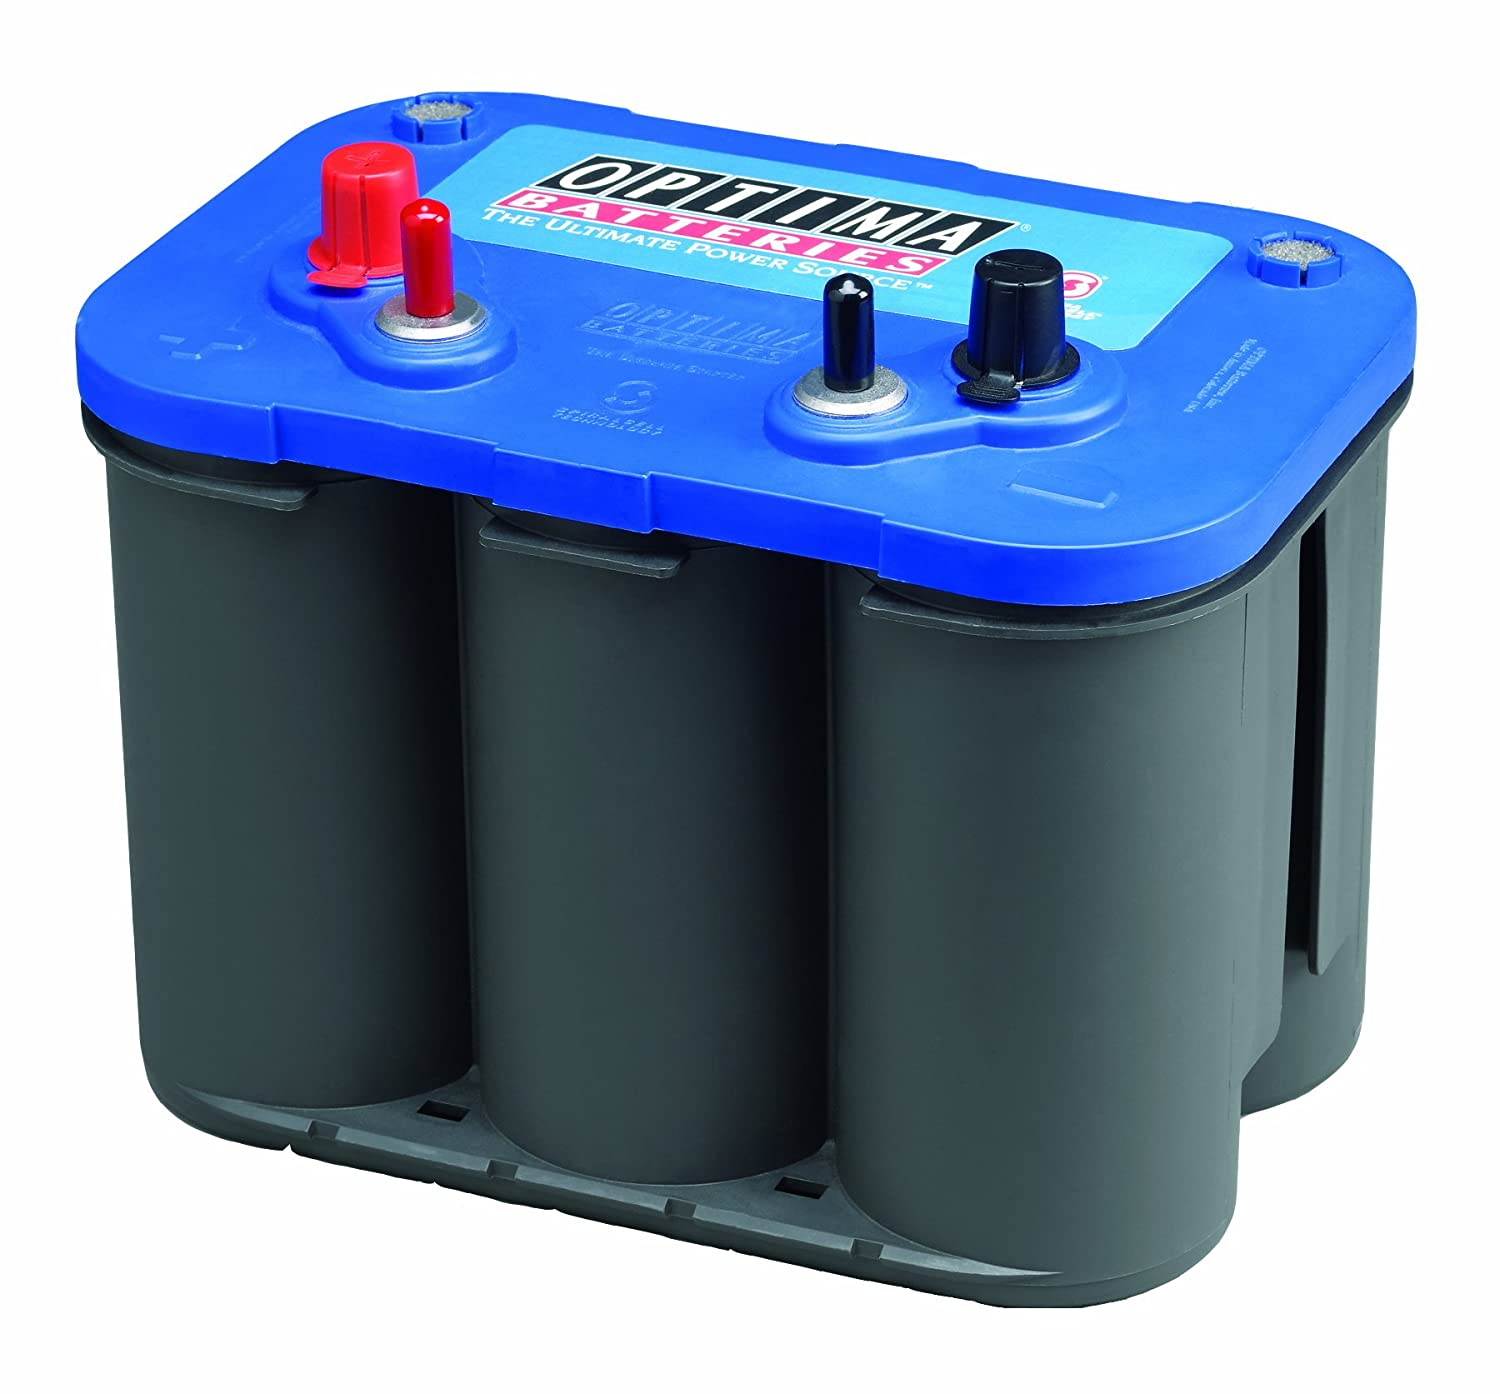 Best Deep Cycle Marine Battery Reviews 2019 - List of 15